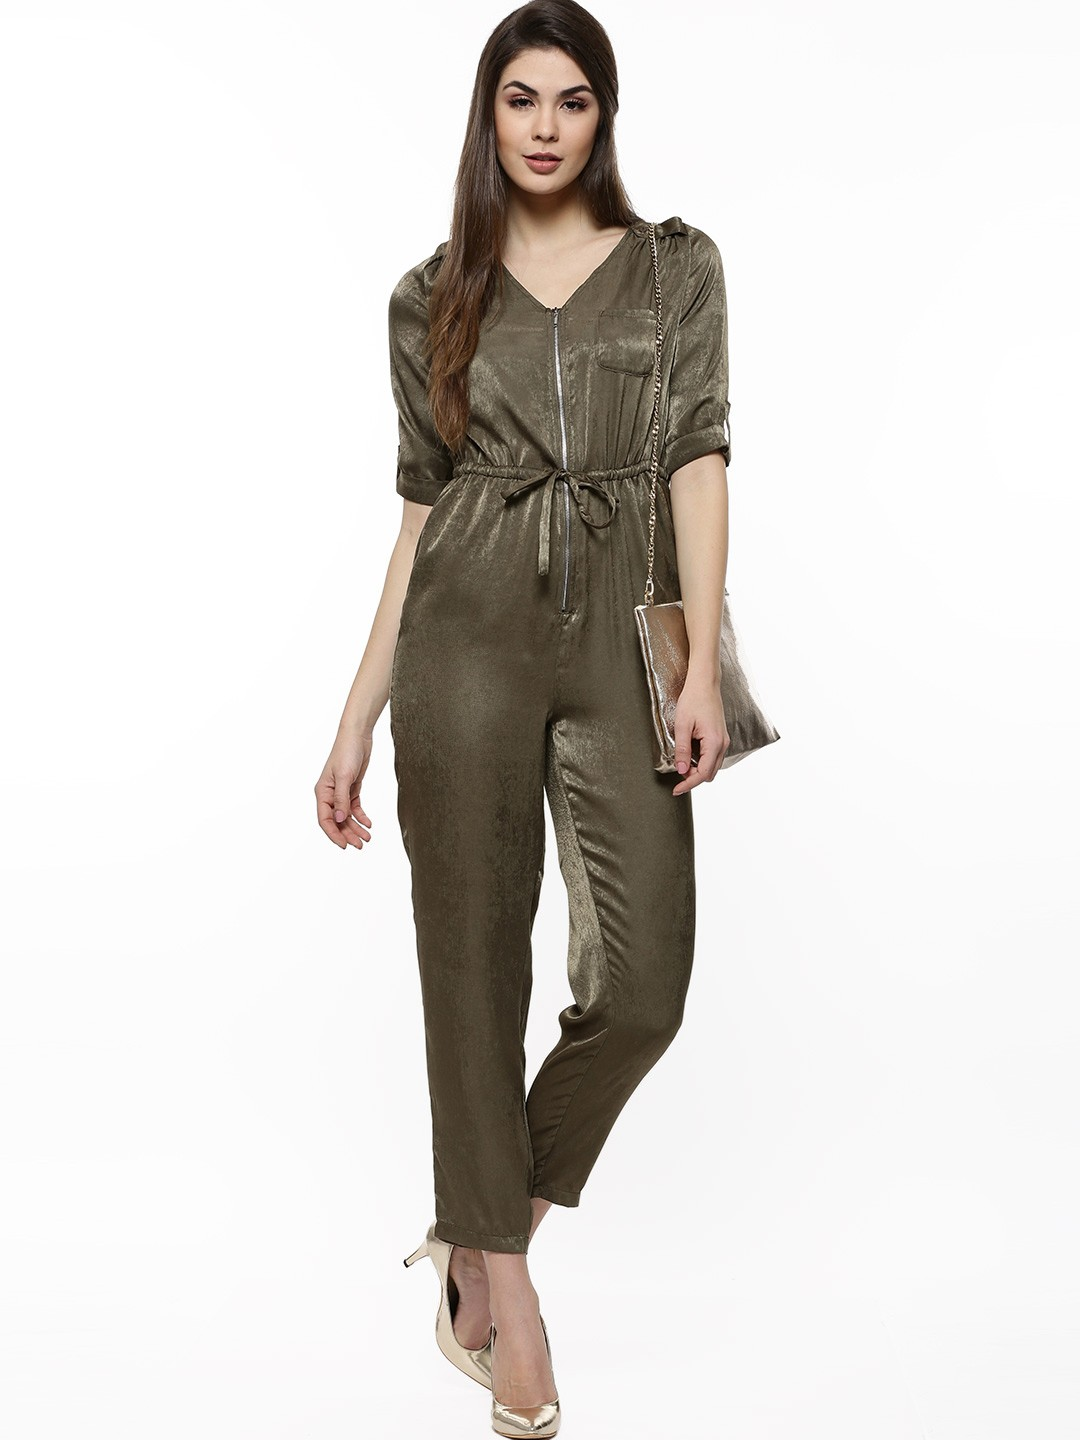 Fantastic Home Womens Jumpsuits Amp Dungarees Sisley Jumpsuit In Khaki